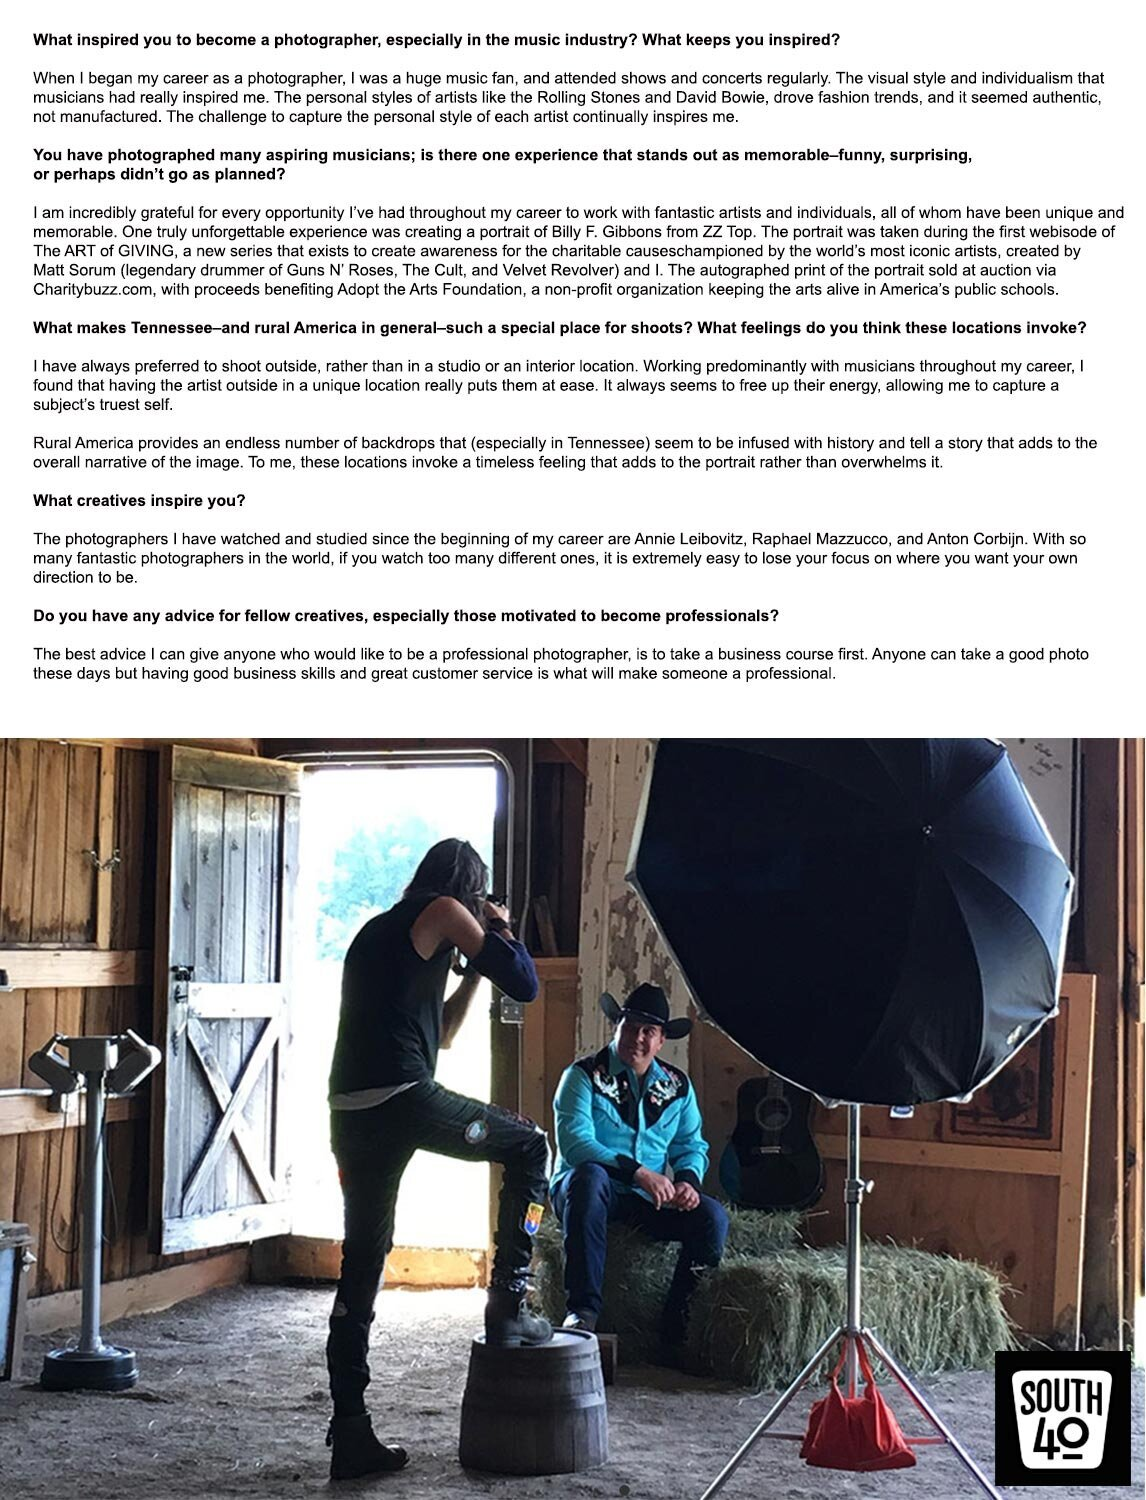 Creative Spotlight Interview Photographer Mark Maryanovich behind the scenes country music photoshoot South 40 inside barn with light set up black and white text on top of photo page 6